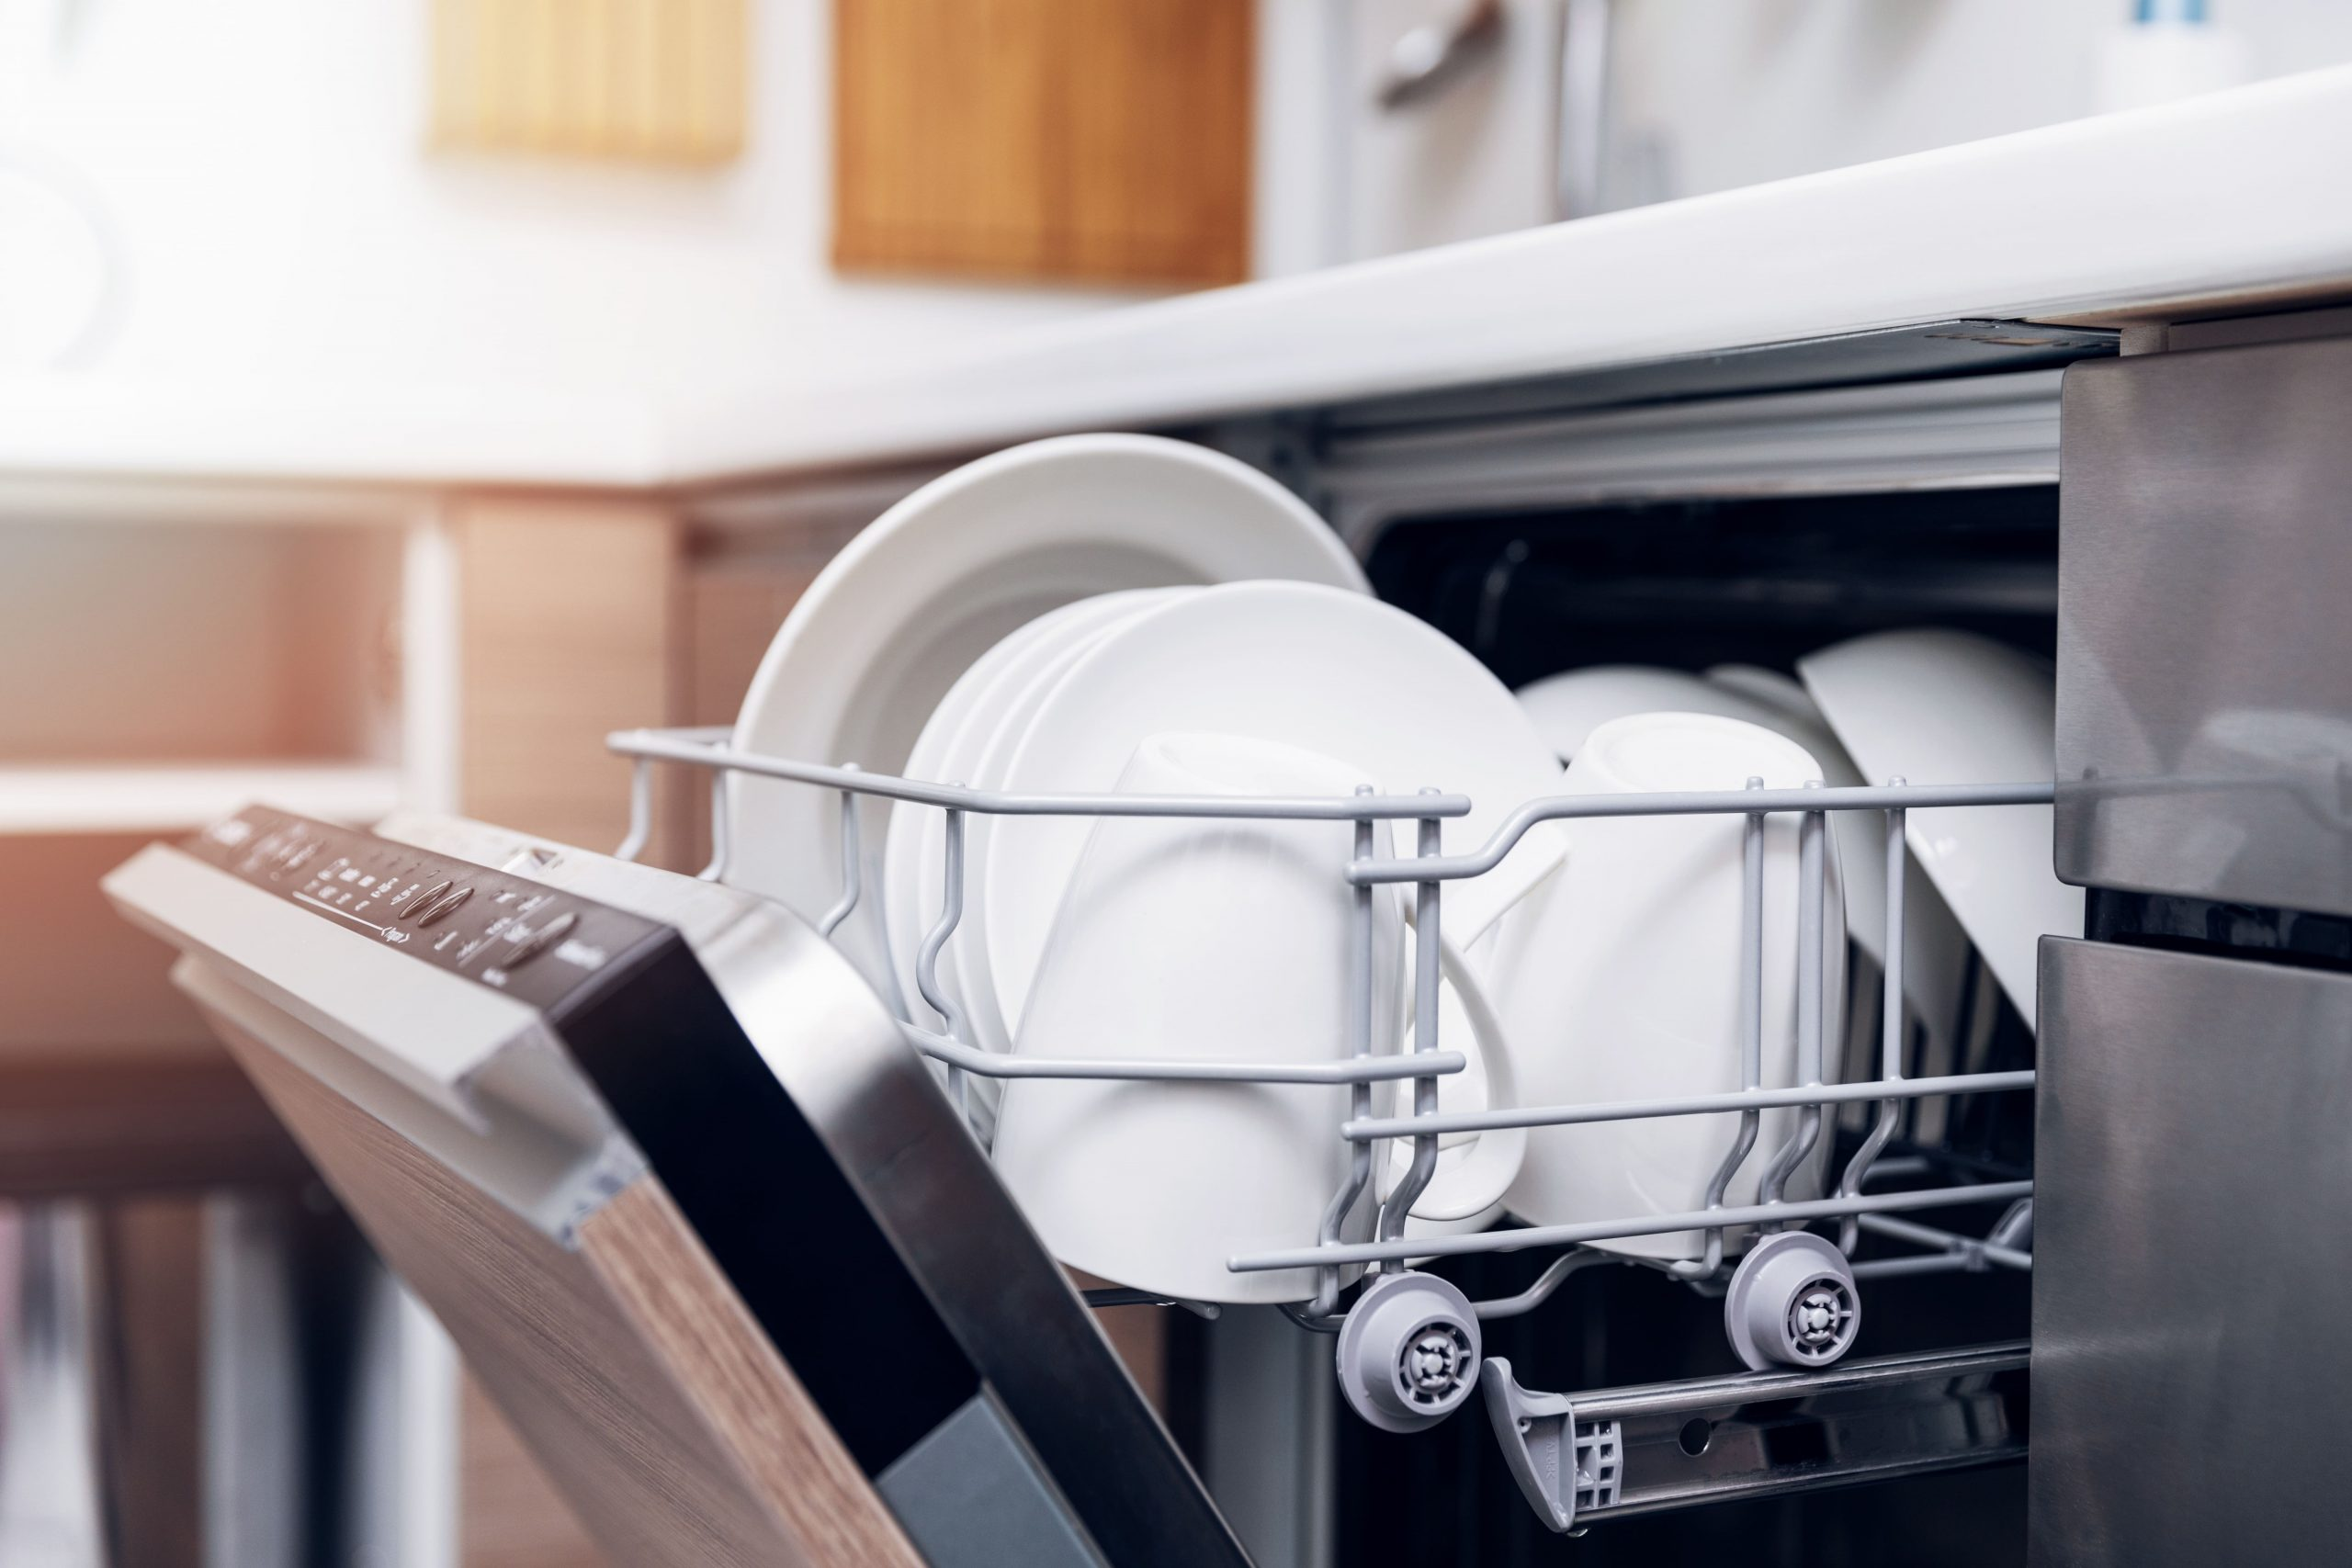 blog image of dishwasher in apartment